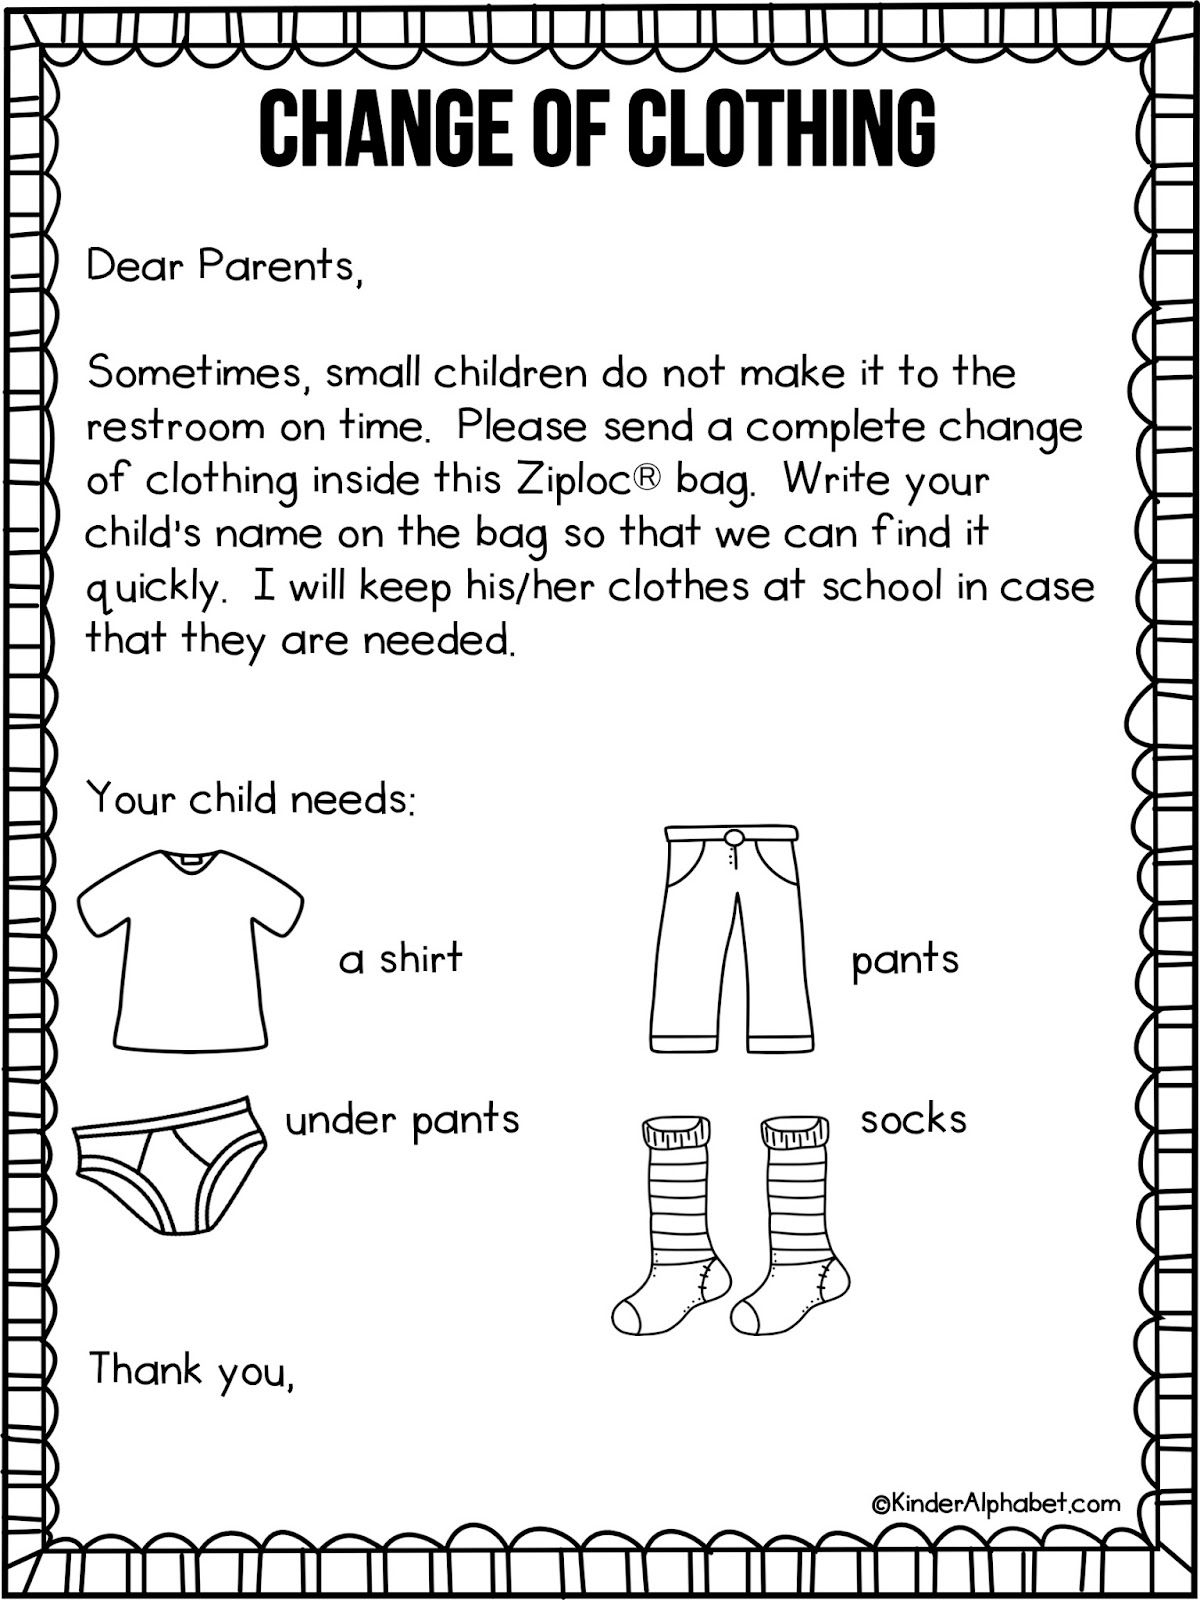 Preschool Welcome Letter Template - Parent Letter for Change Of Clothing Free From Kinderalphabet Via